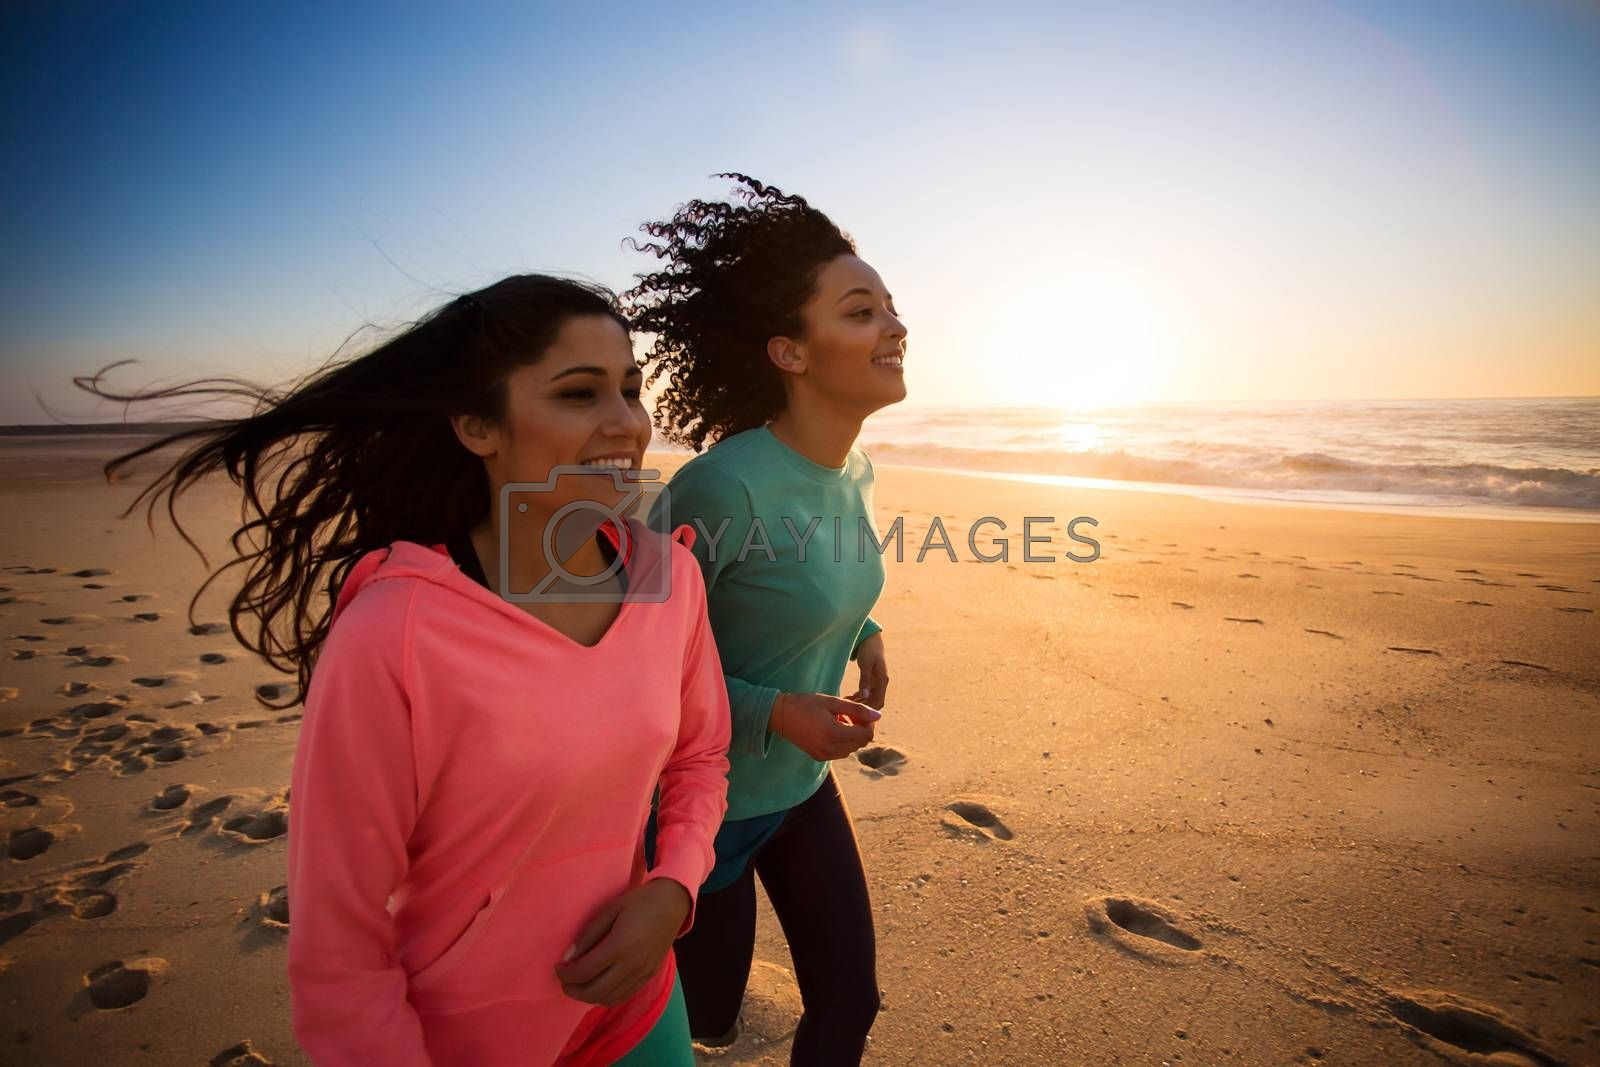 Couple of women running and walking on the beach